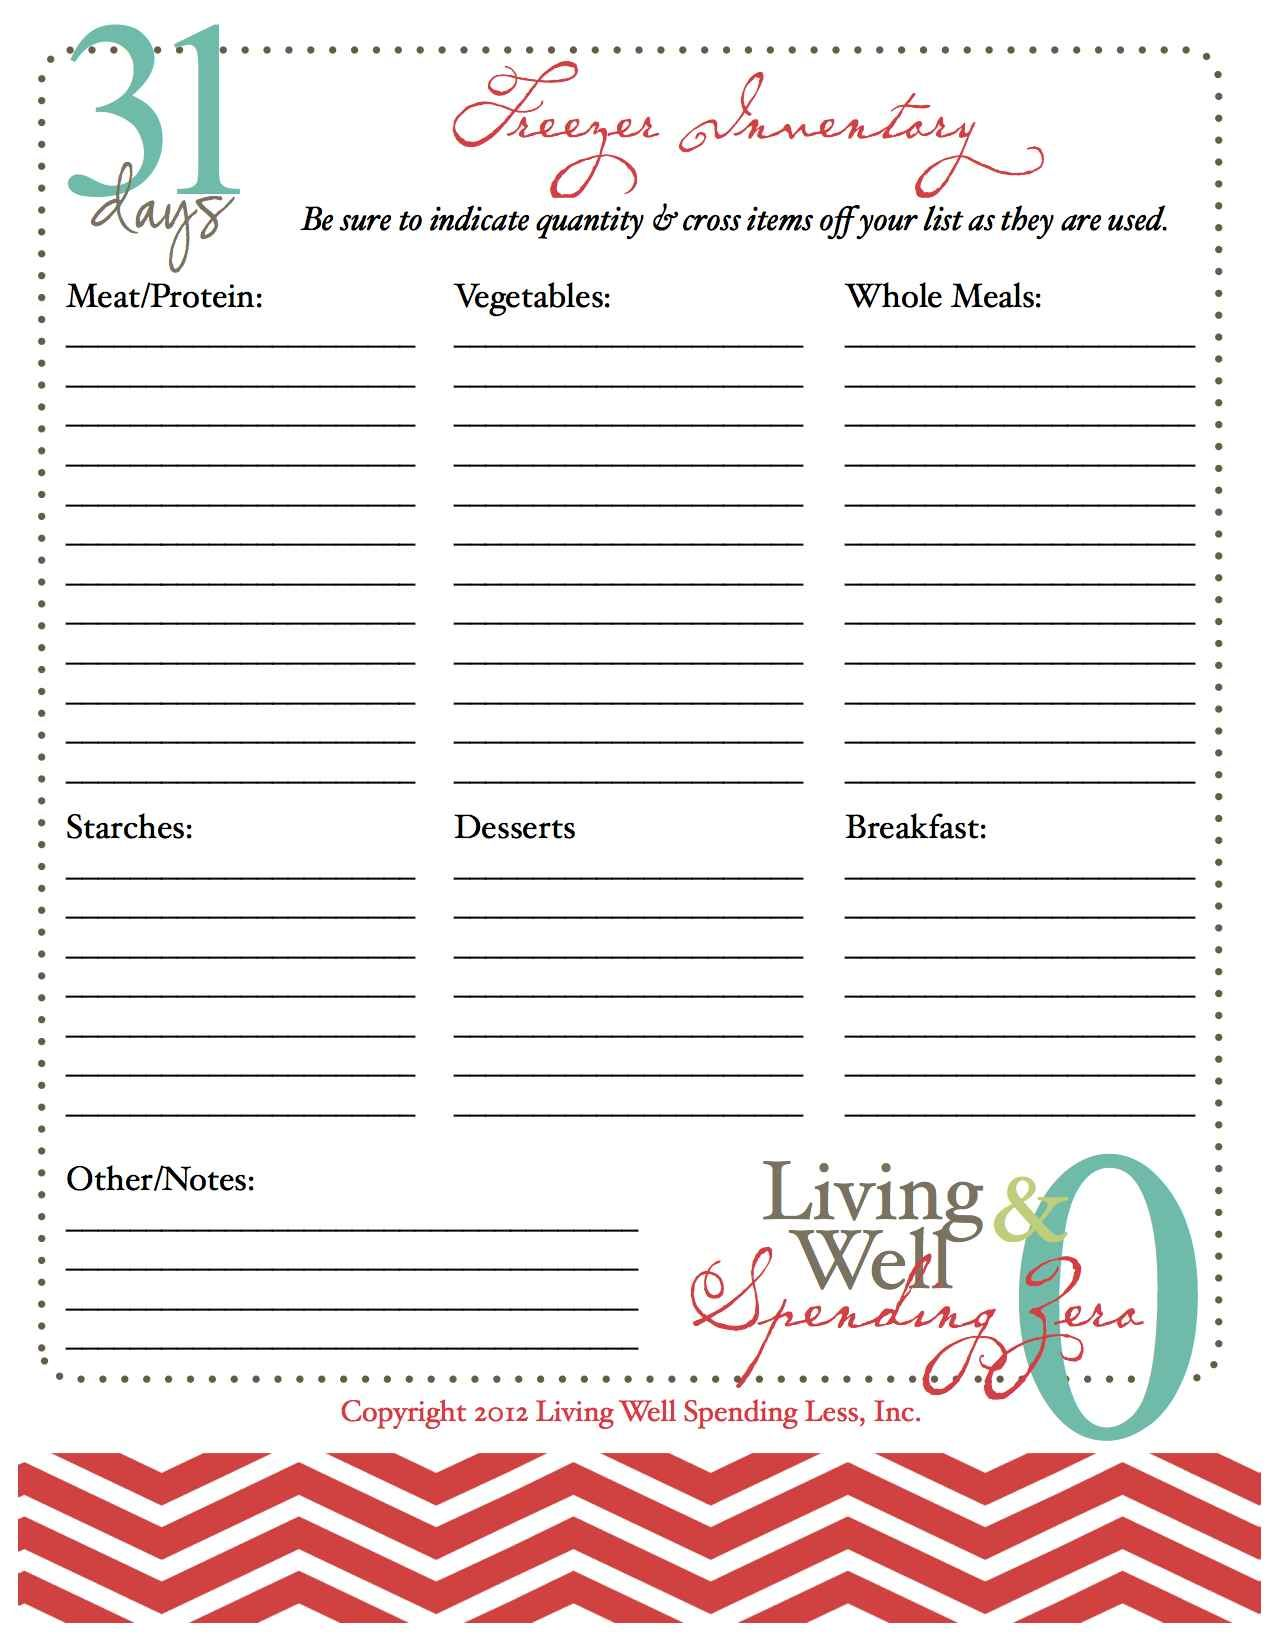 Freezer Inventory Printable Worksheet